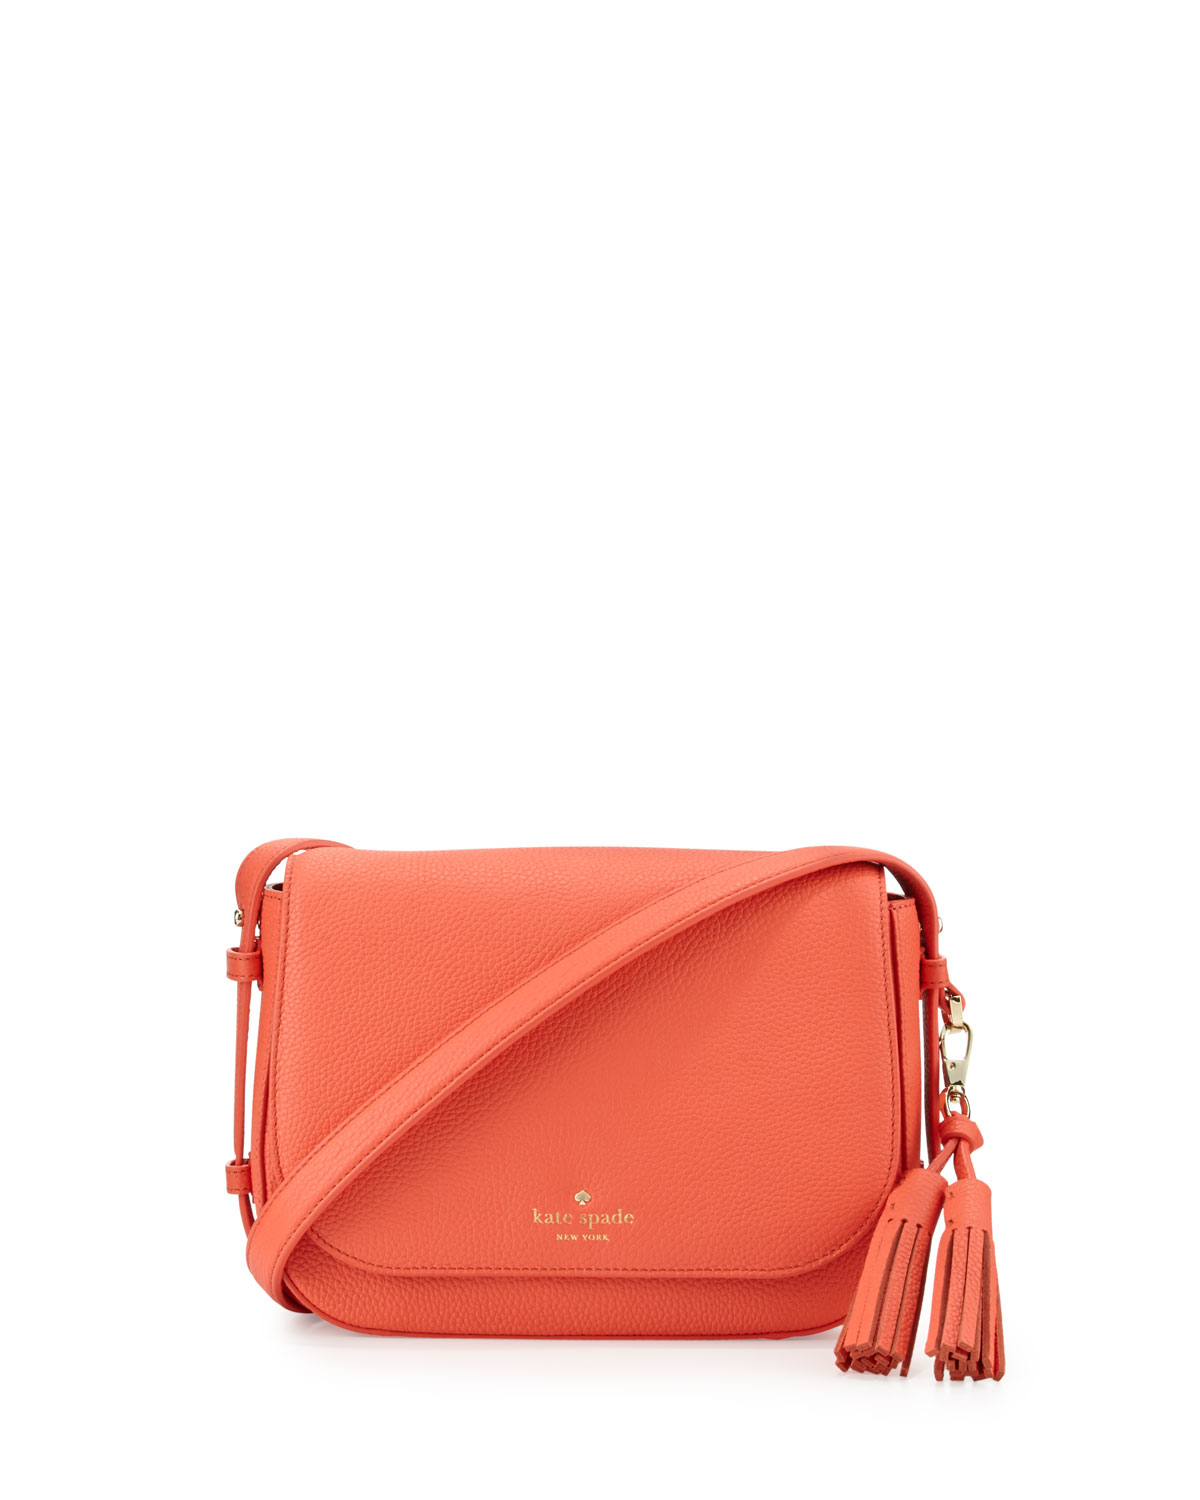 e6c964b36 Kate Spade Orchard Street Penelope Crossbody Bag in Red - Lyst